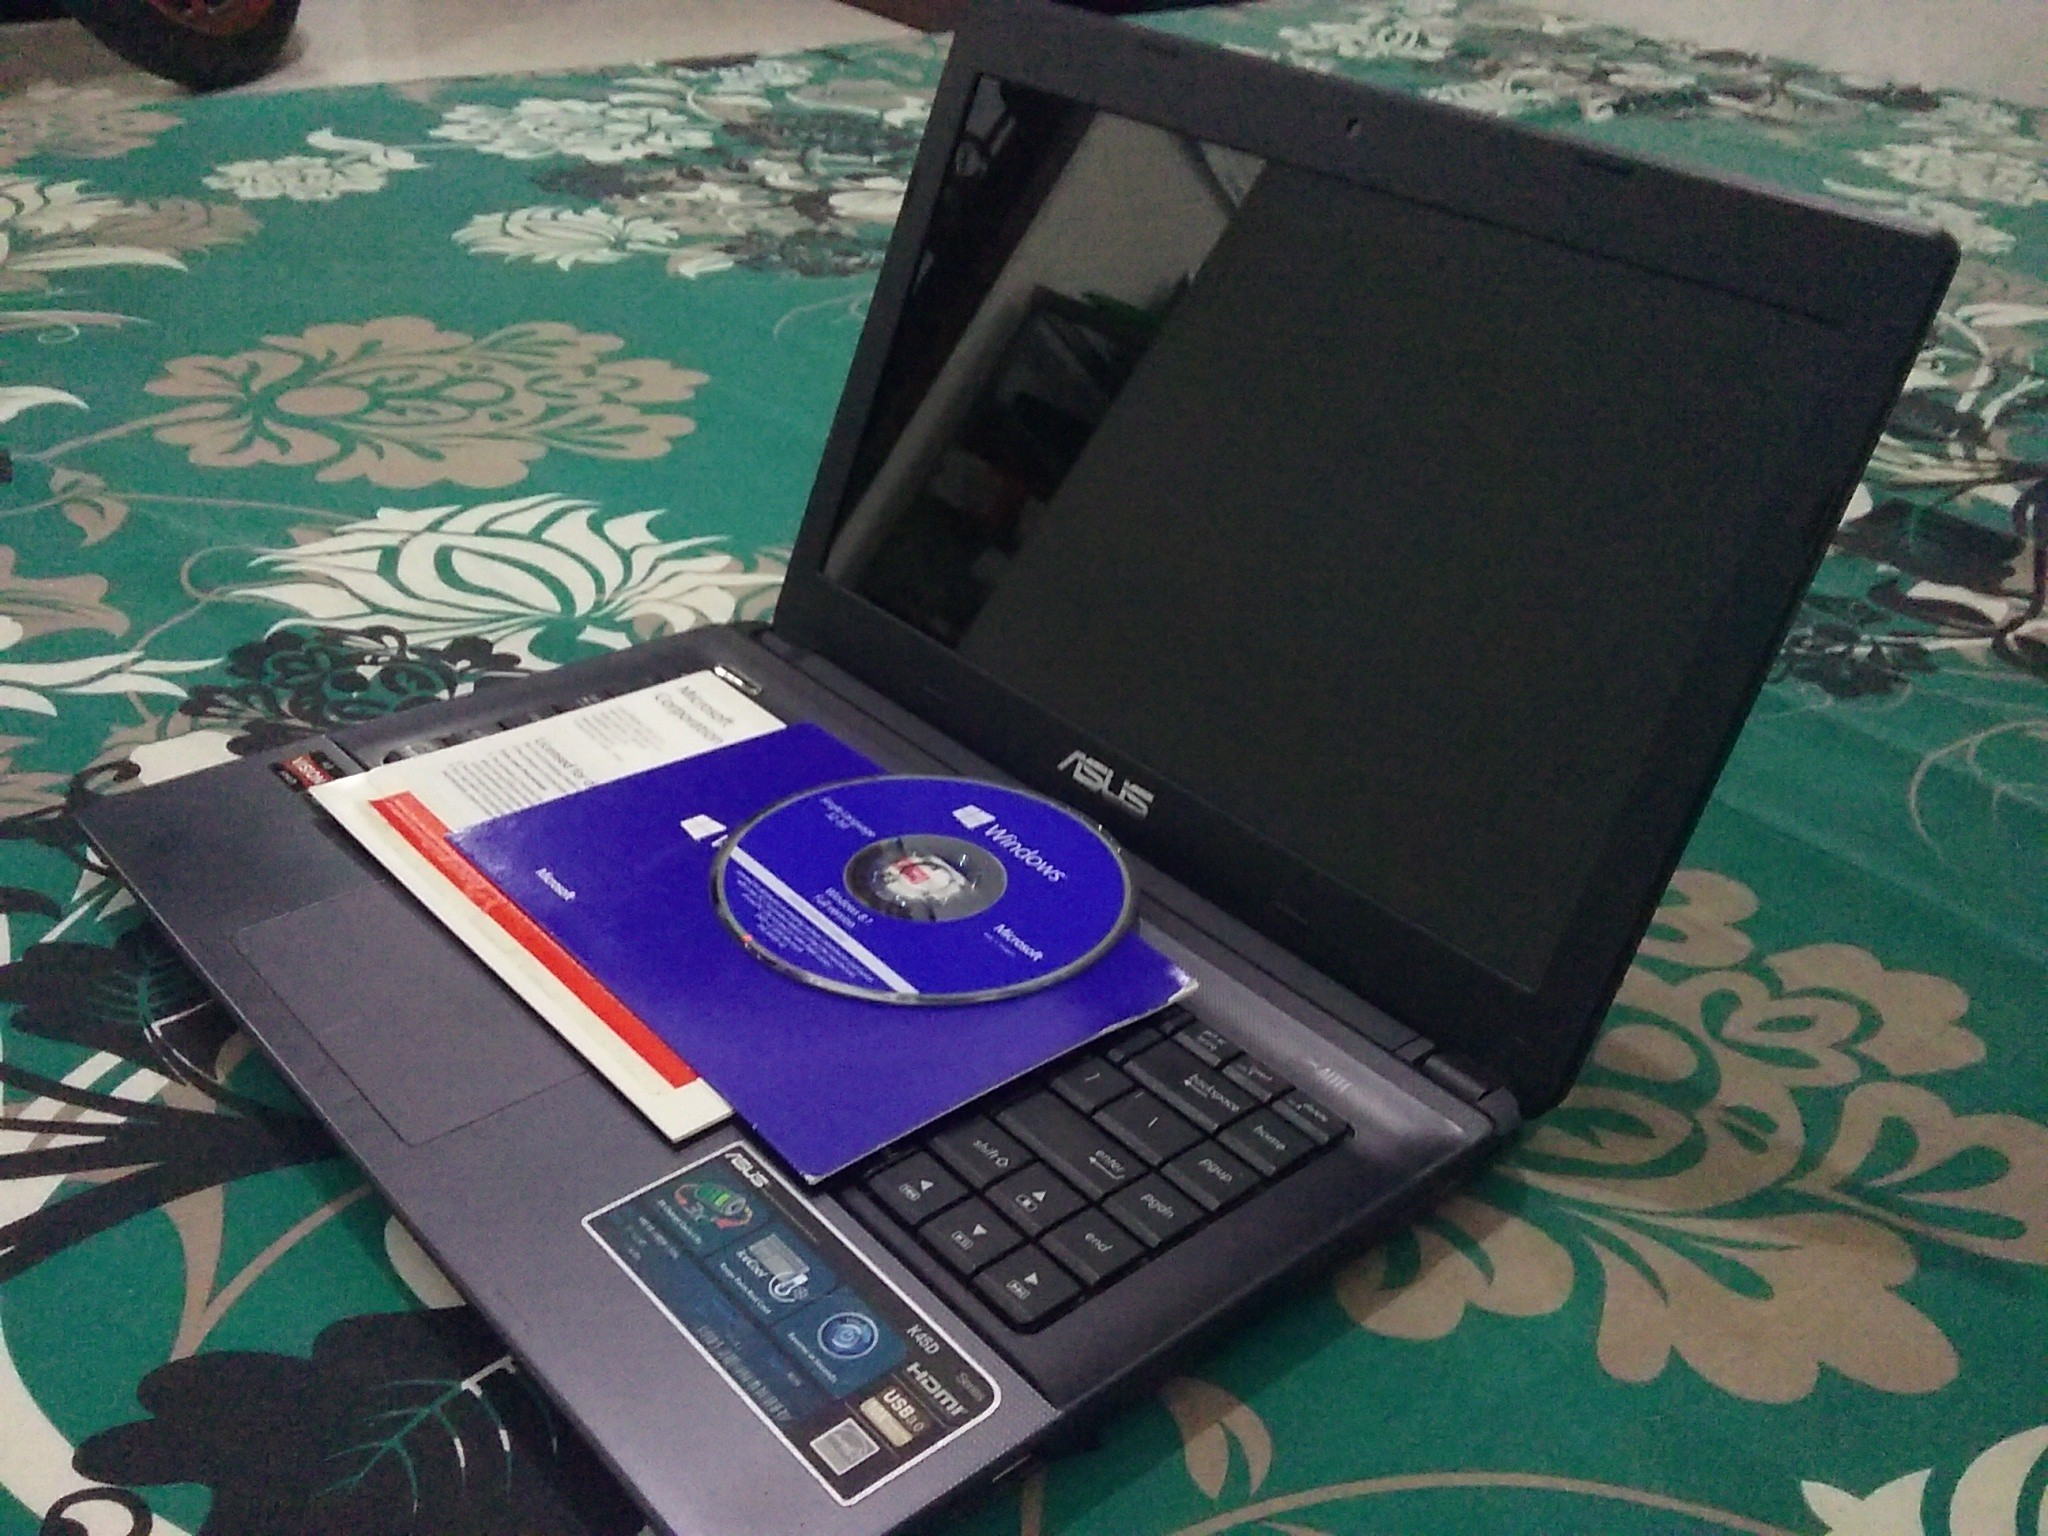 Dijual Laptop ASUS K45DR + Windows 8.1 Ori